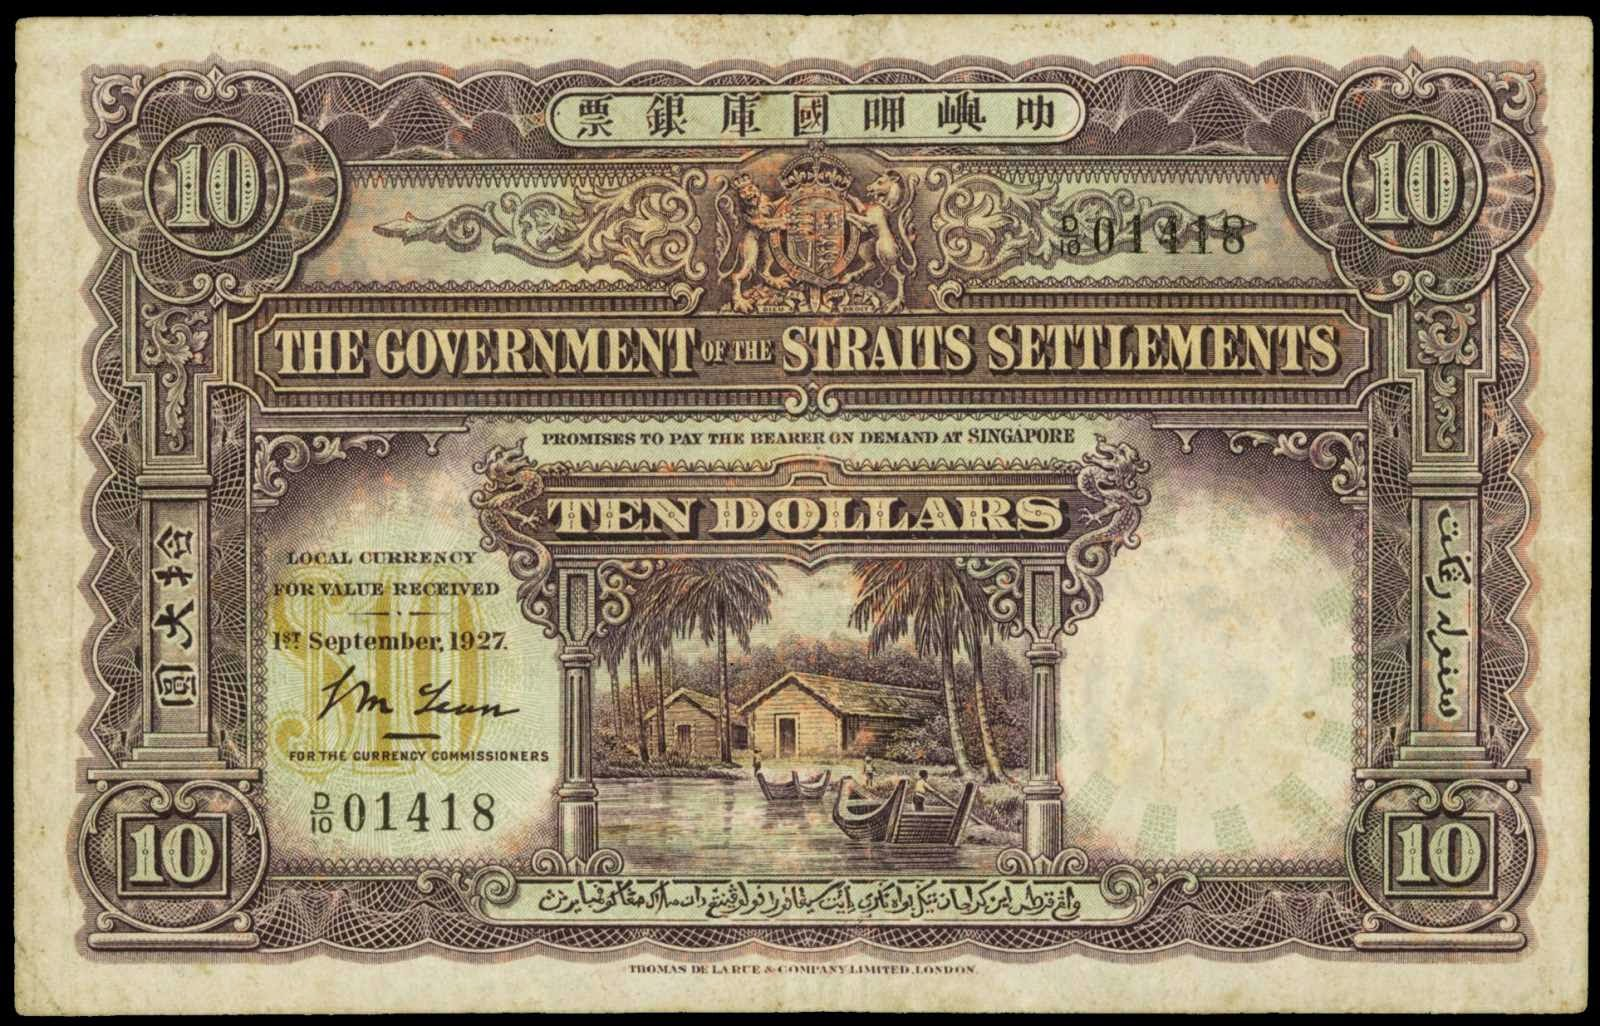 Straits Settlements banknotes paper money currency 10 Dollars banknote 1927